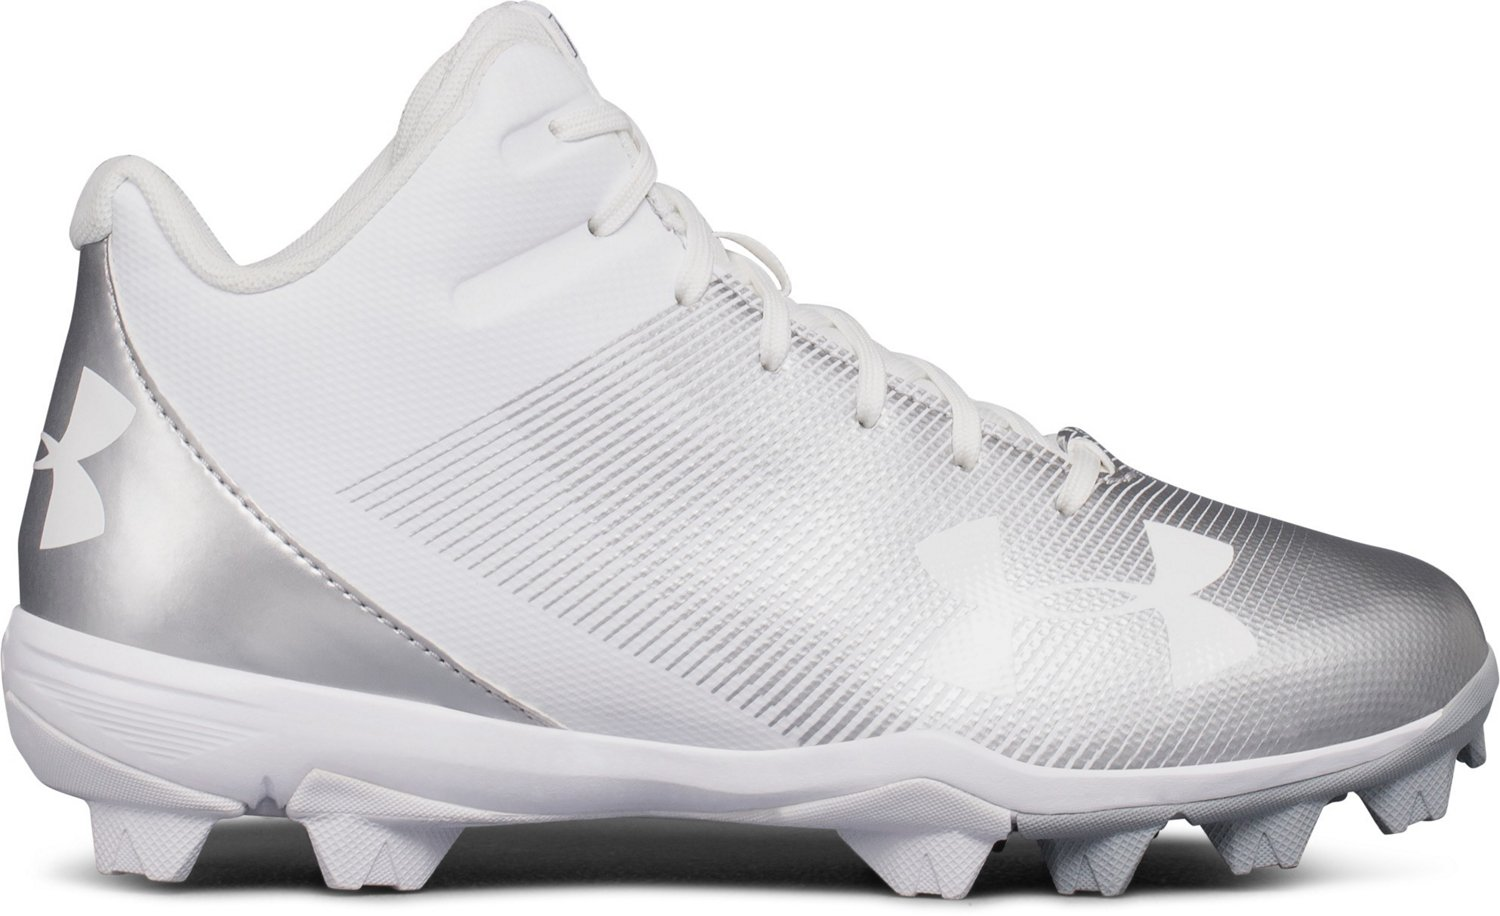 6535a99307 Display product reviews for Under Armour Kids' Leadoff Mid RM Jr. Baseball  Cleats